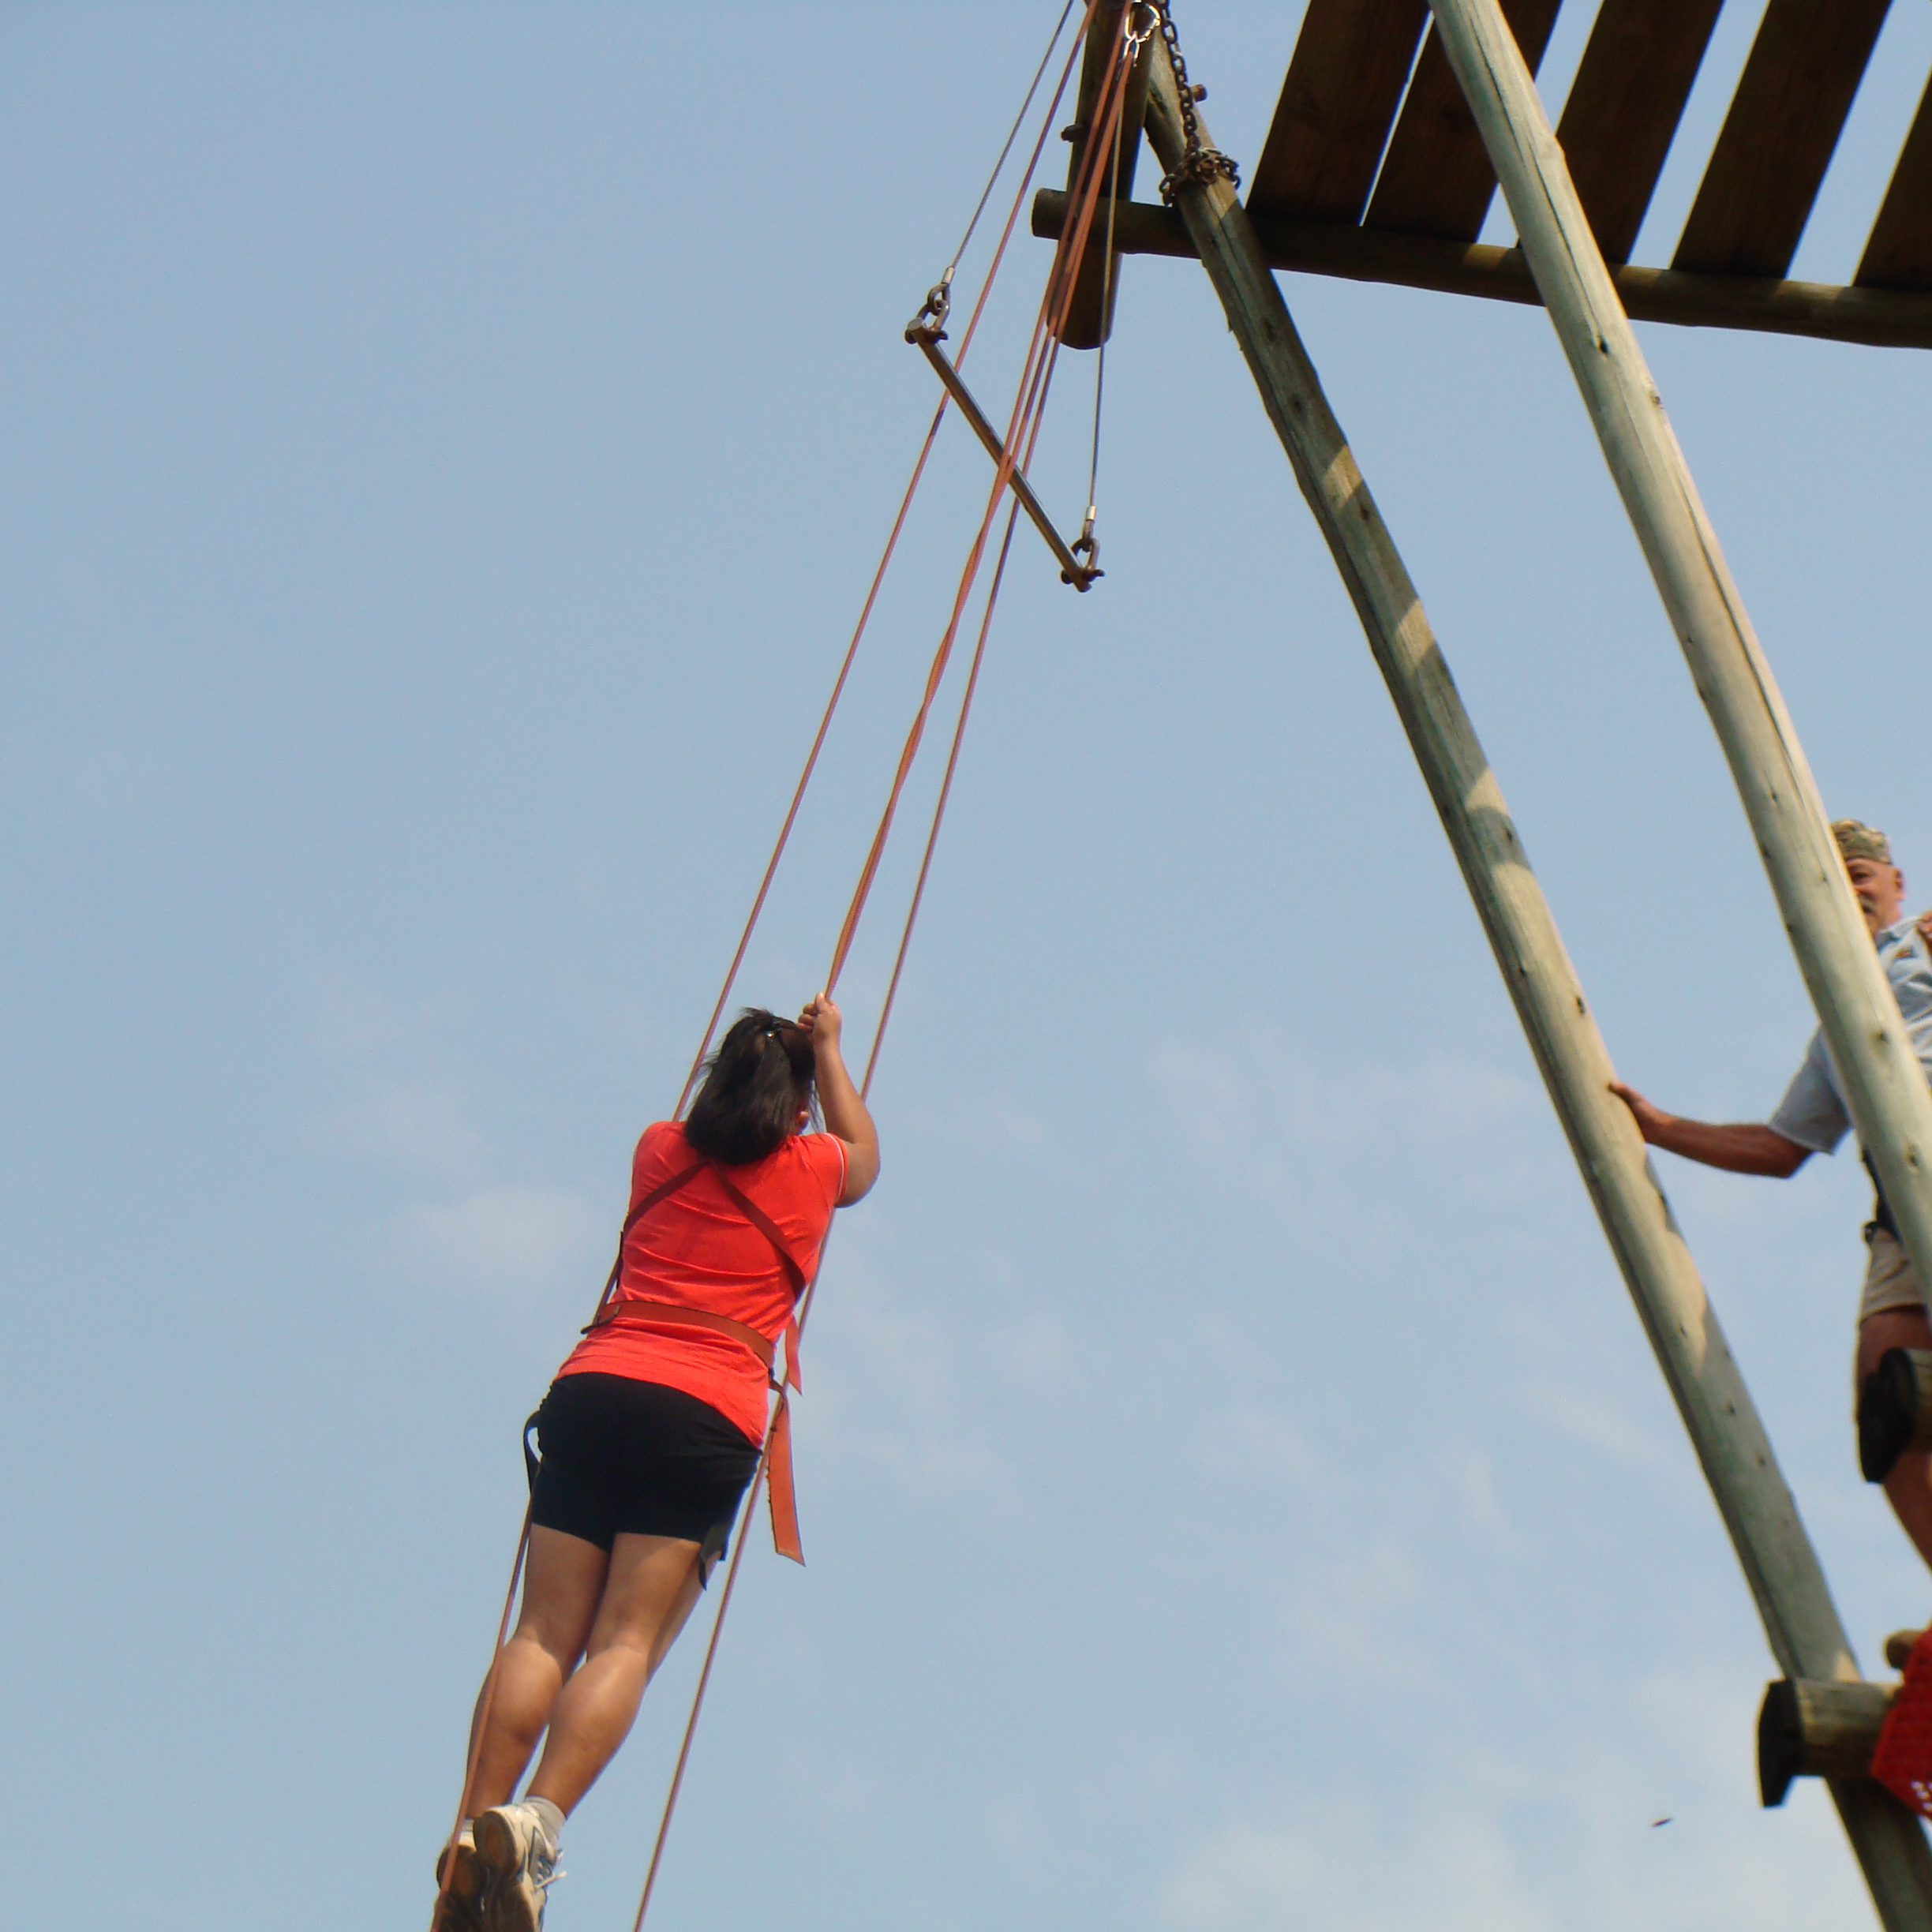 Woman hanging on harness